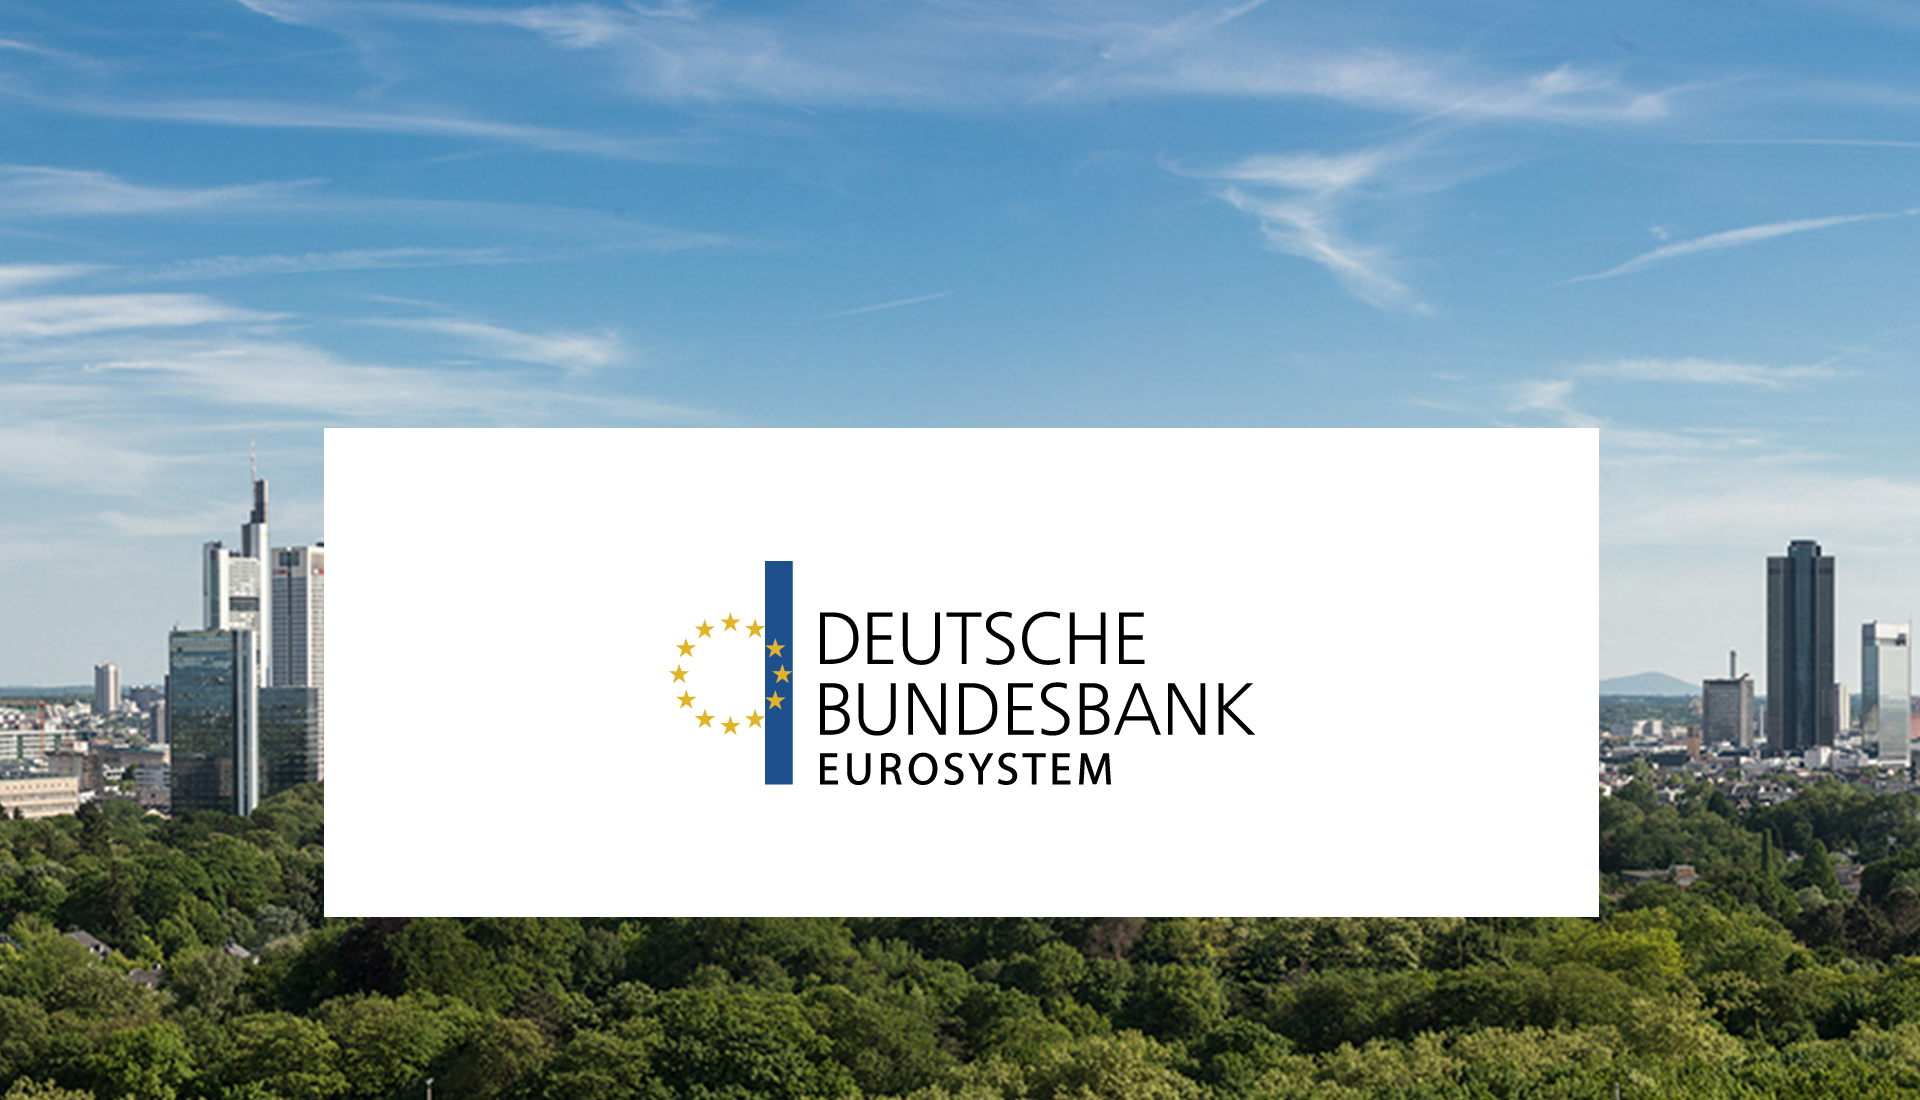 deutsche-bundesbank-post-img